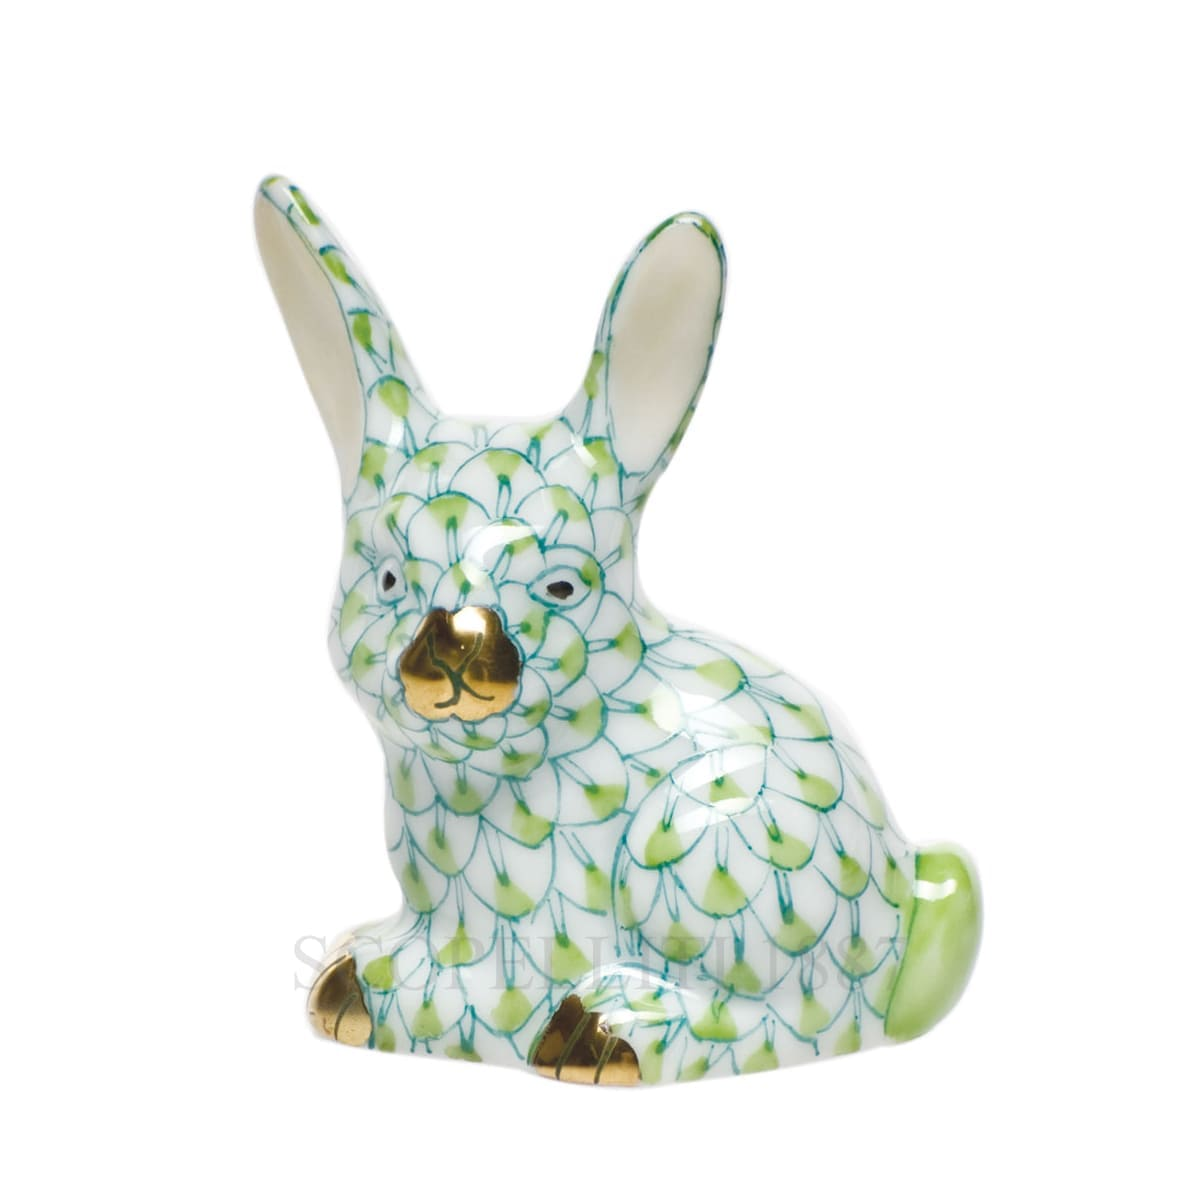 herend porcelain bunny figurine green